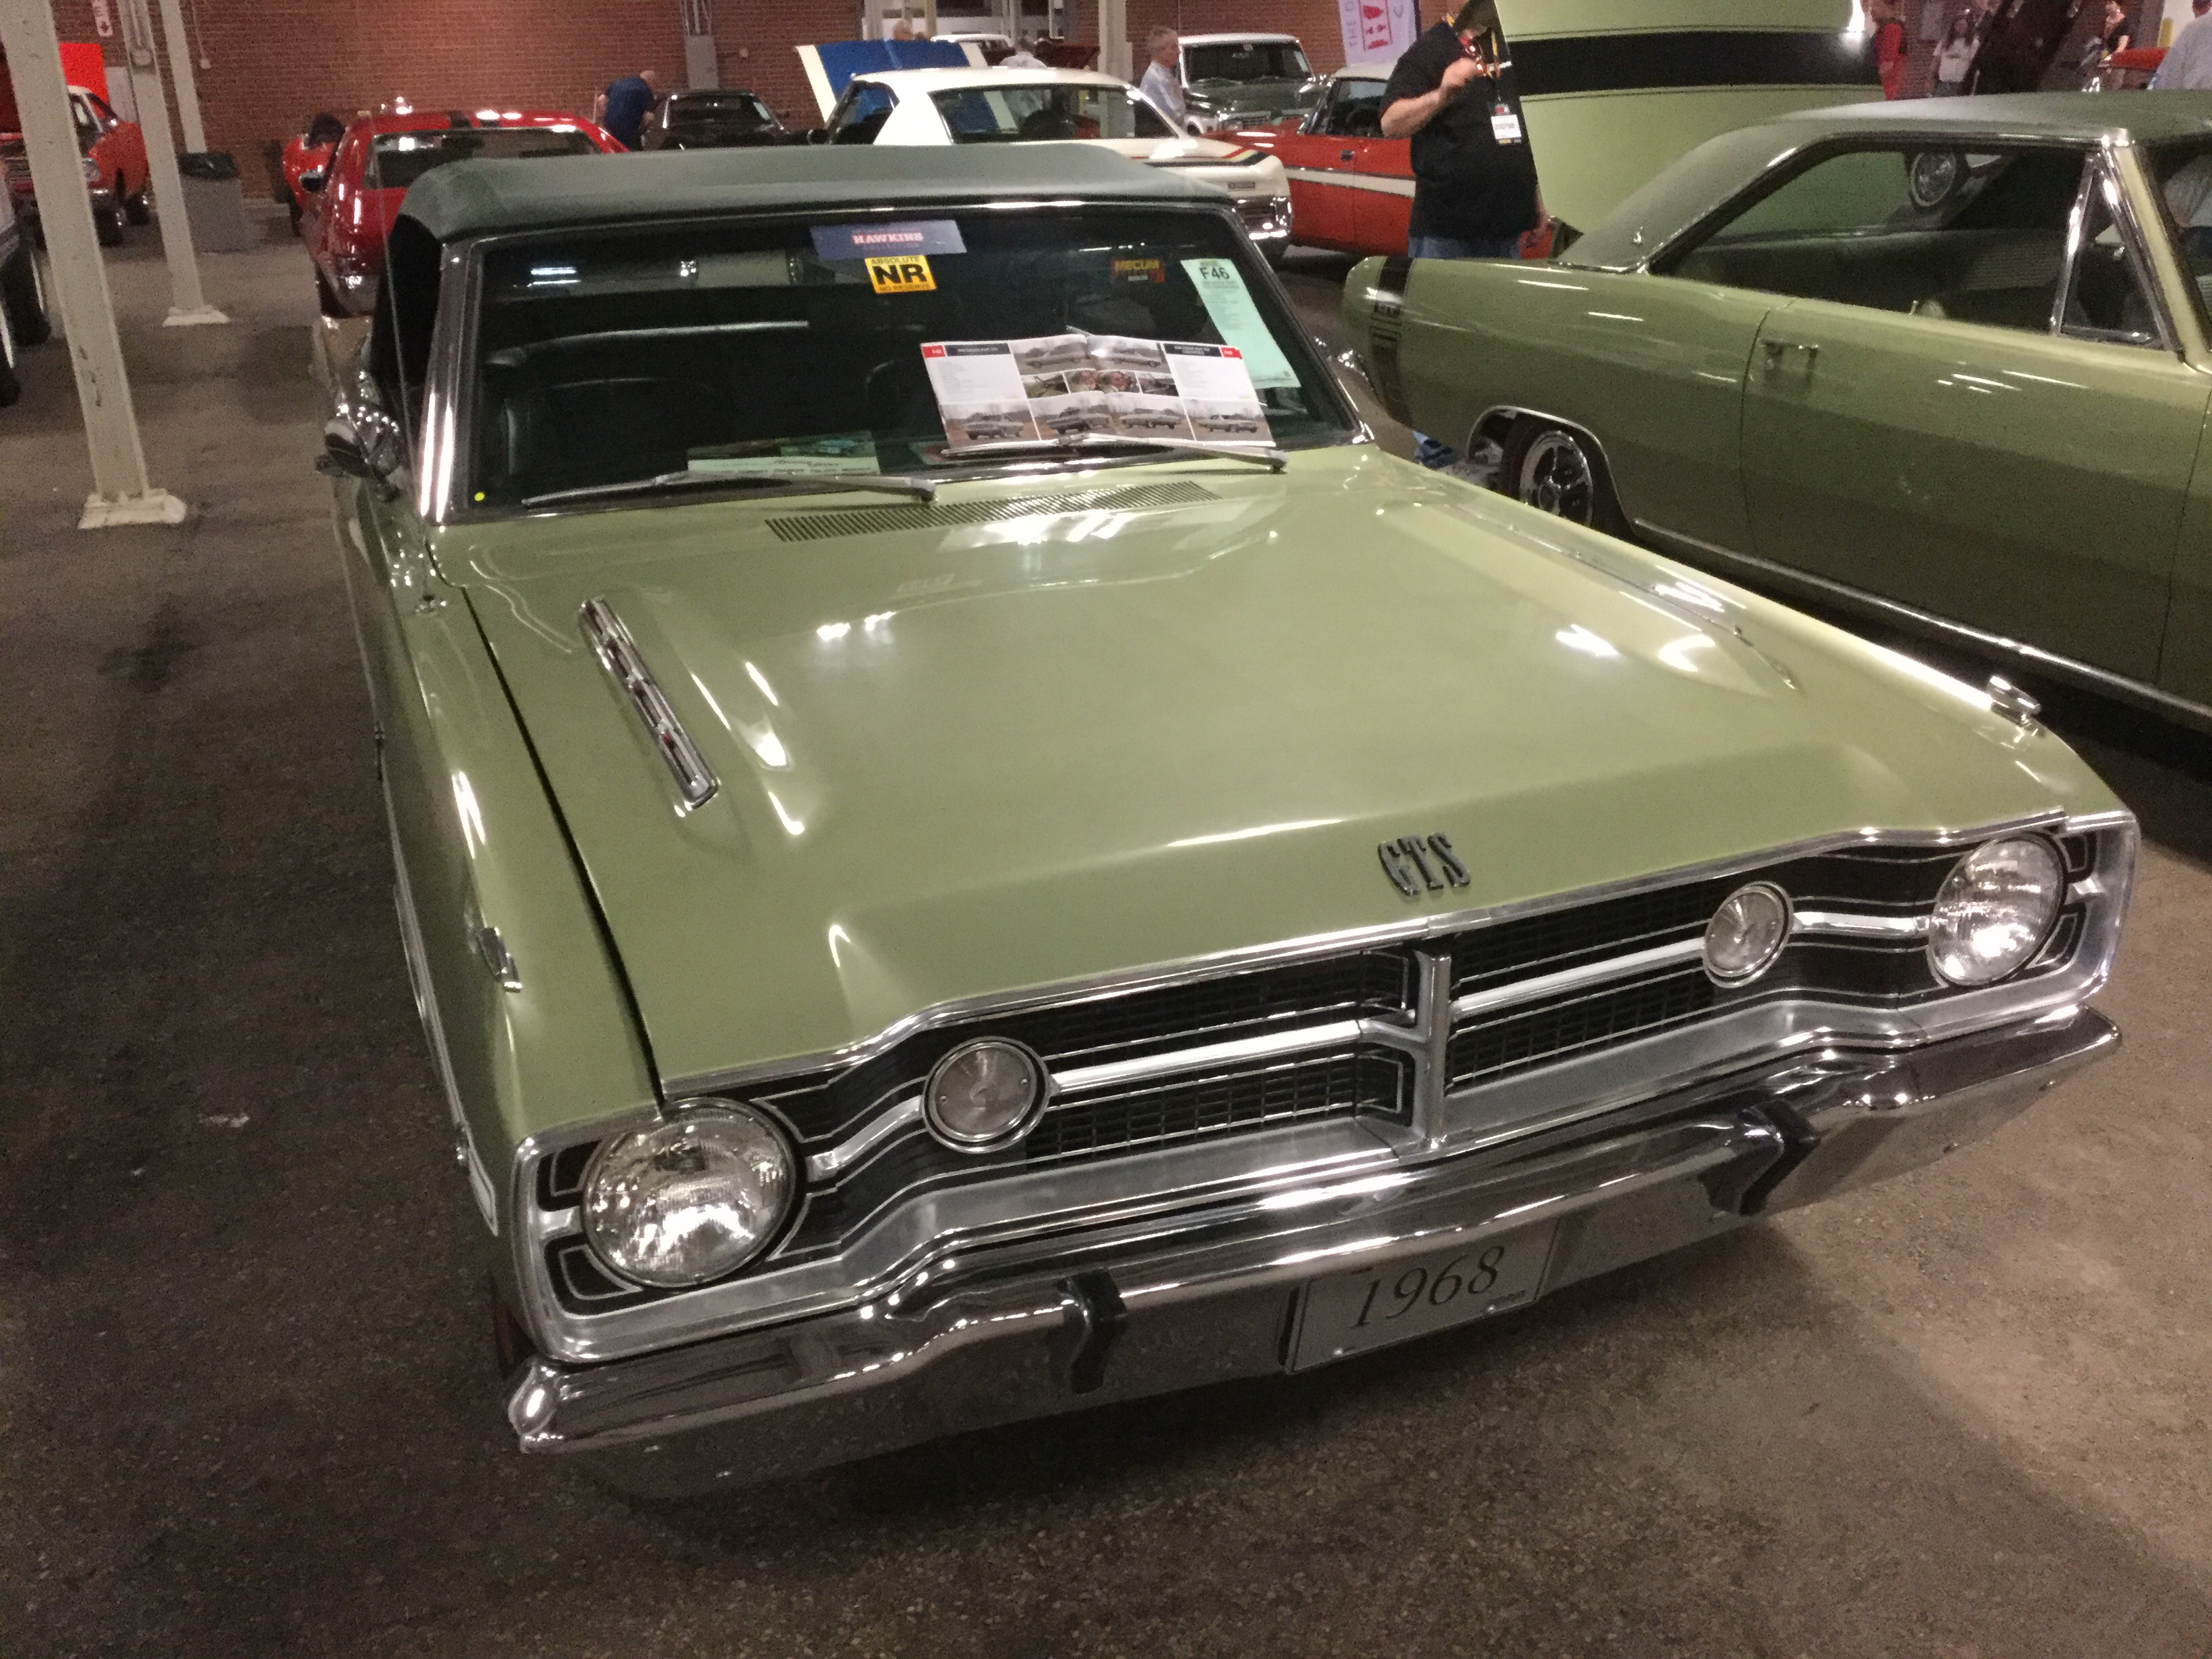 1968 Dodge Dart Values Hagerty Valuation Tool